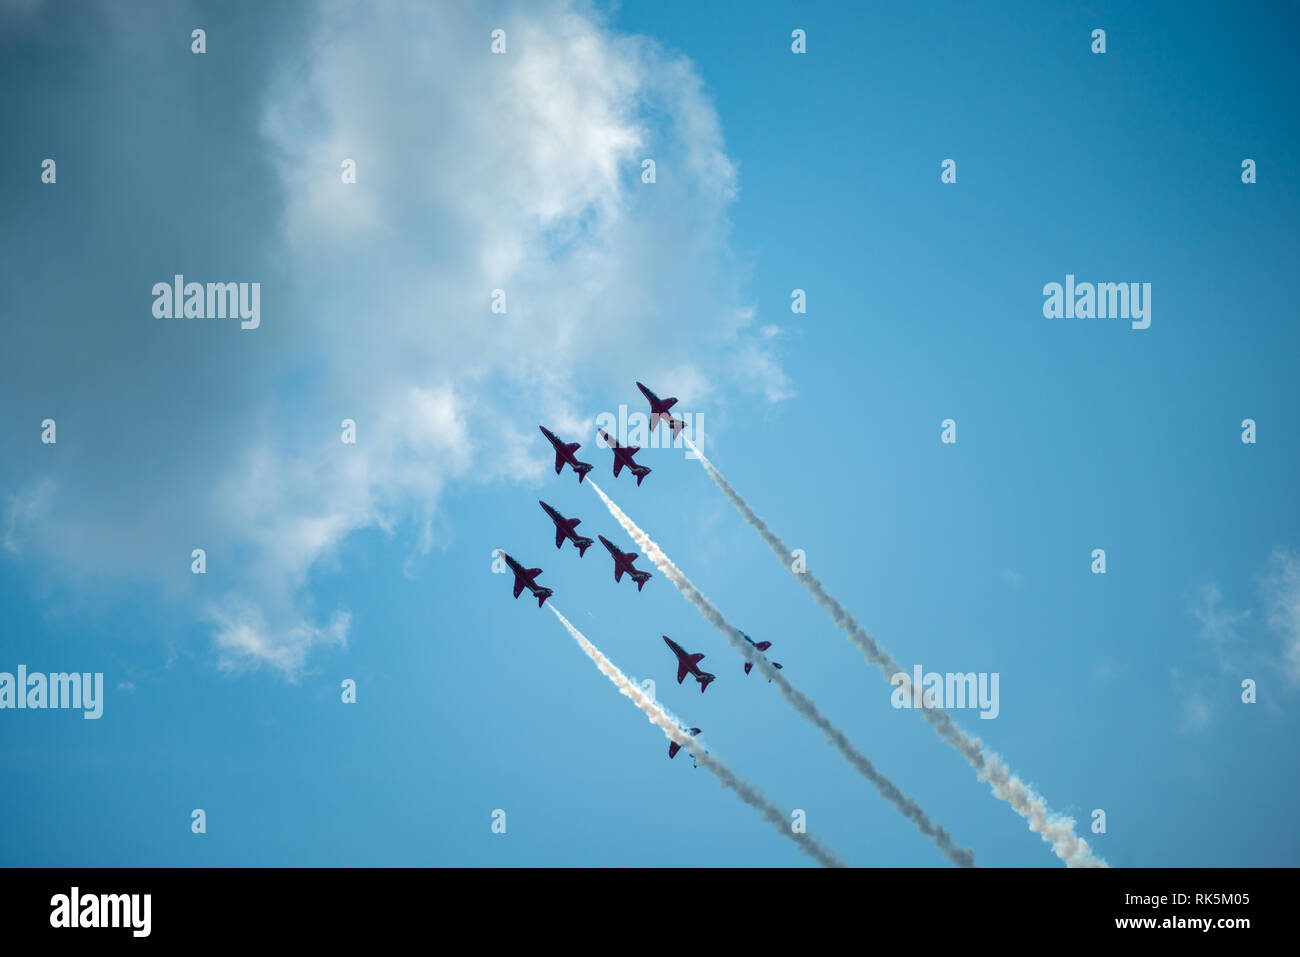 The Royal Air Force Red Arrows aeroplanes release smoke as they perform their routine at the Eastbourne Airshow in Sussex, UK. - Stock Image